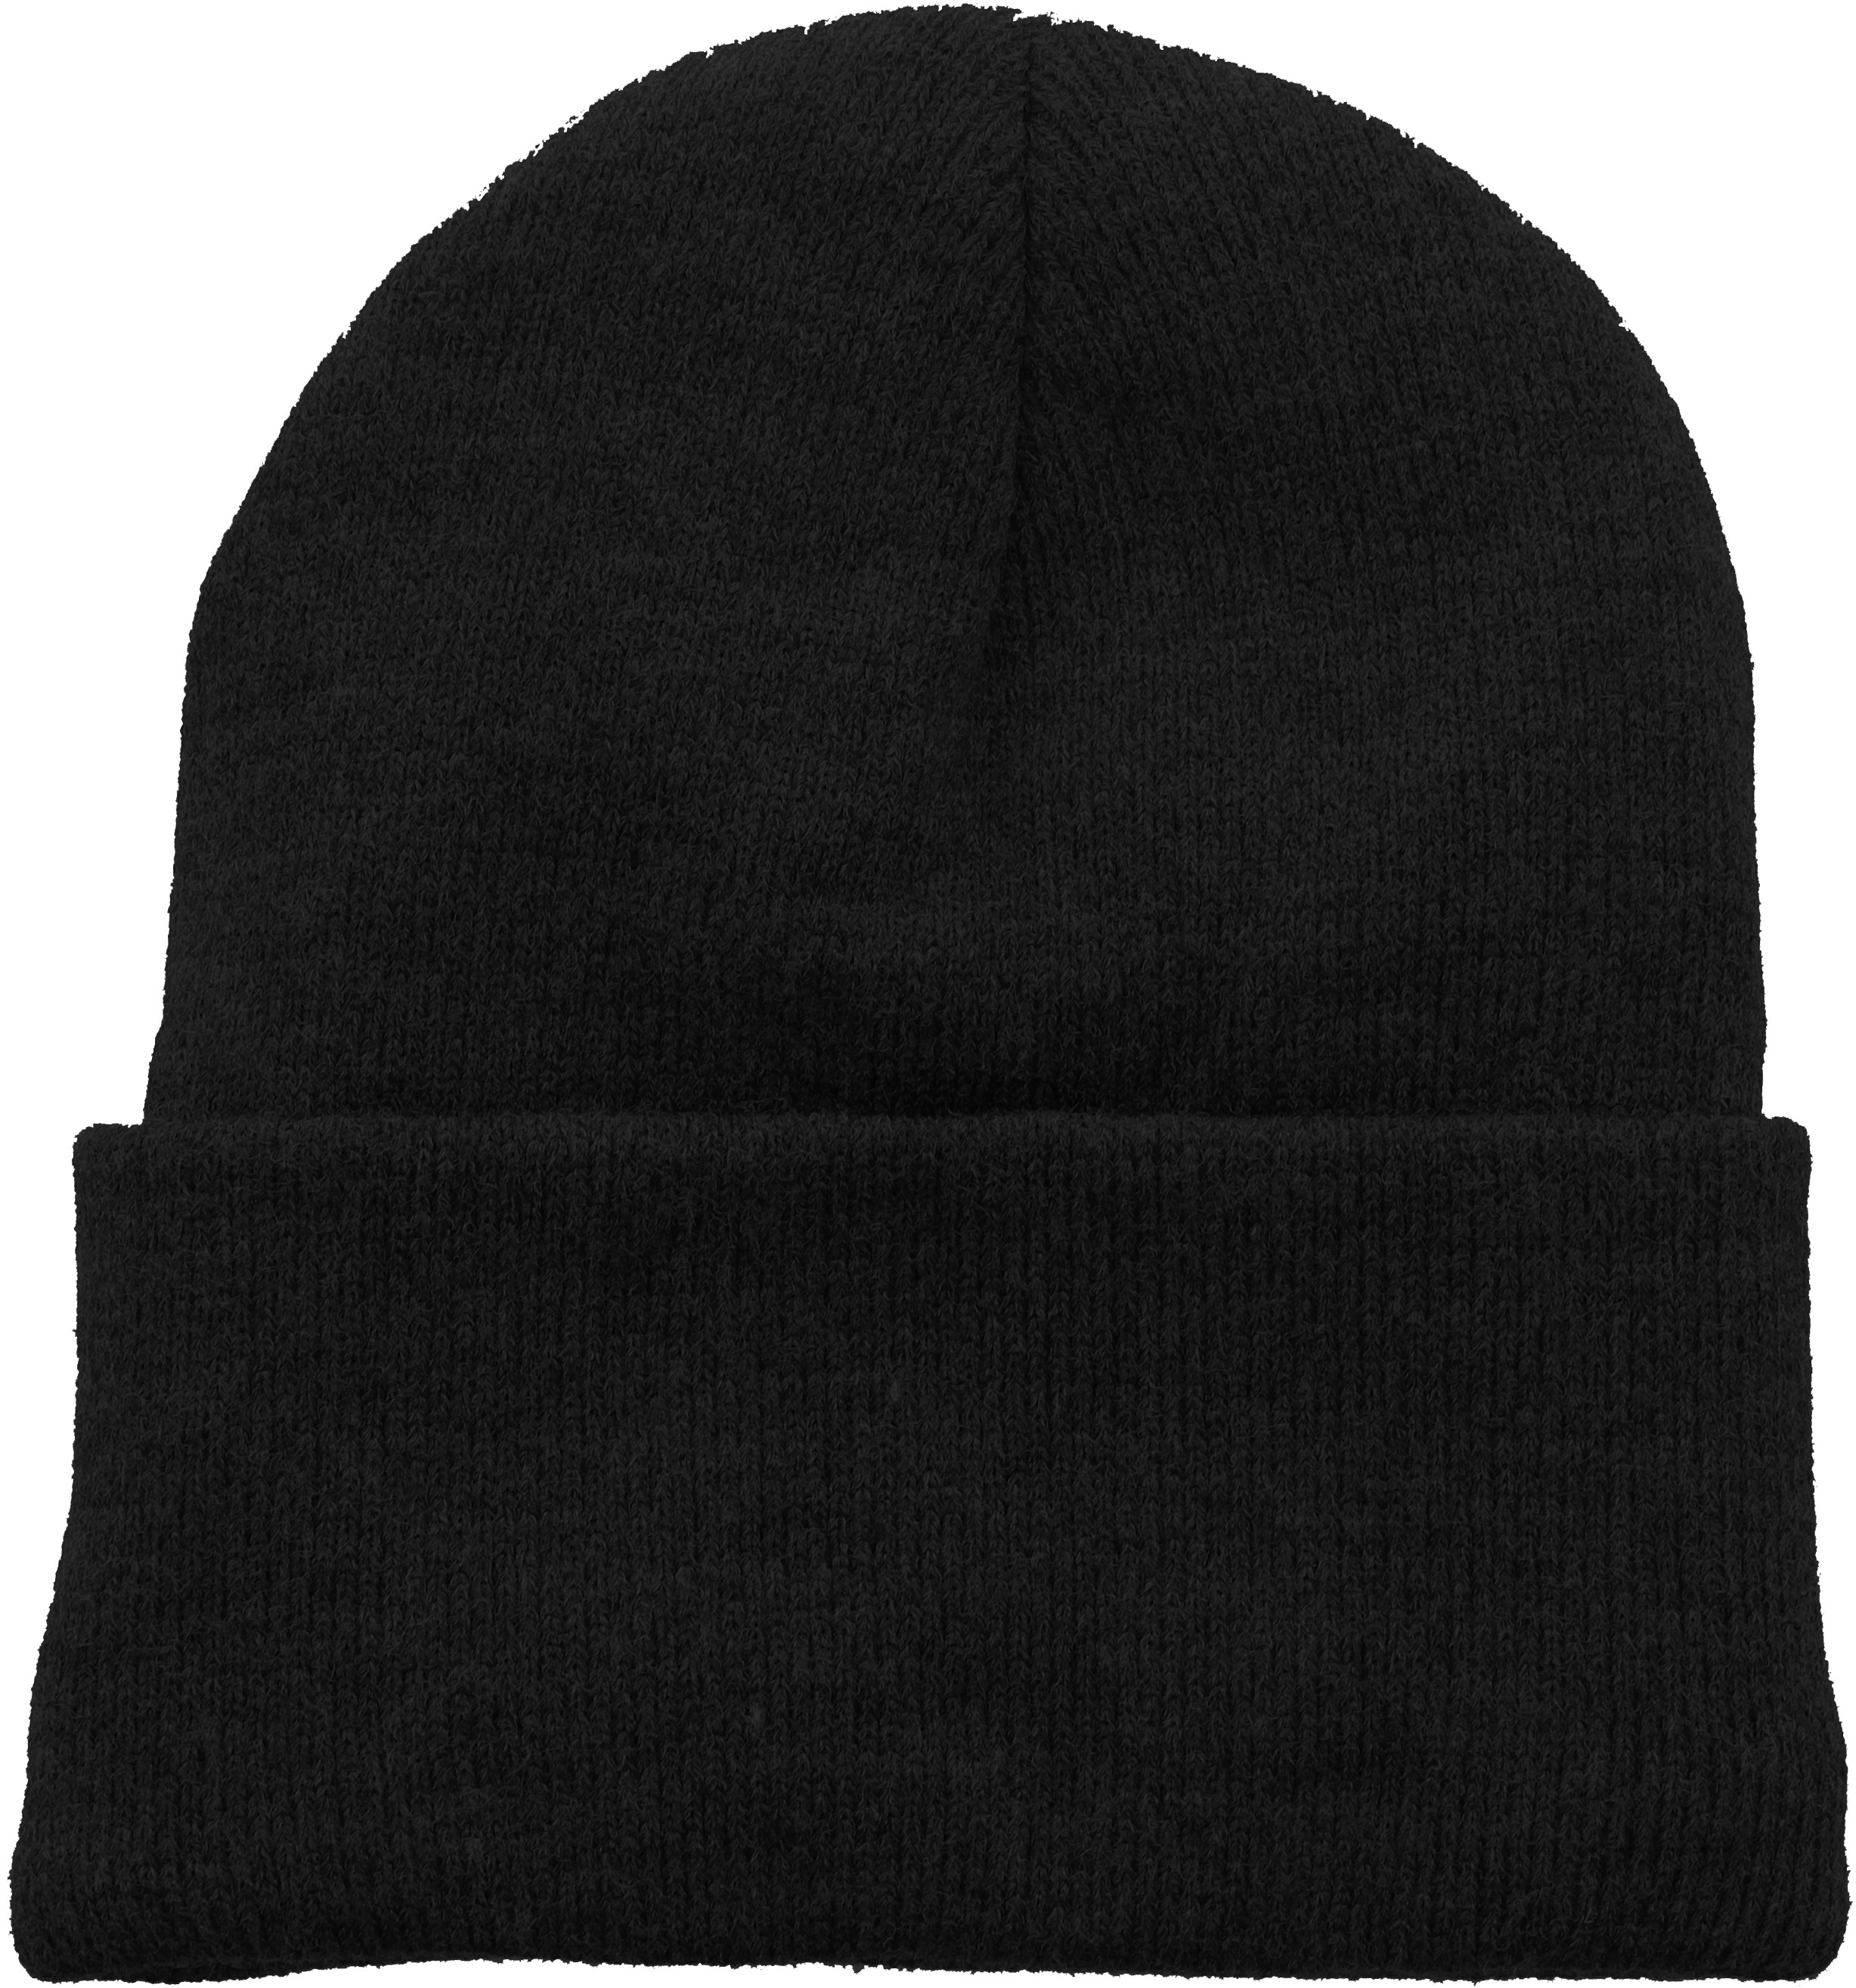 Big House Cold Weather Heavy Winter Fleece Lined Watch Cap USA Made f3c61a019d